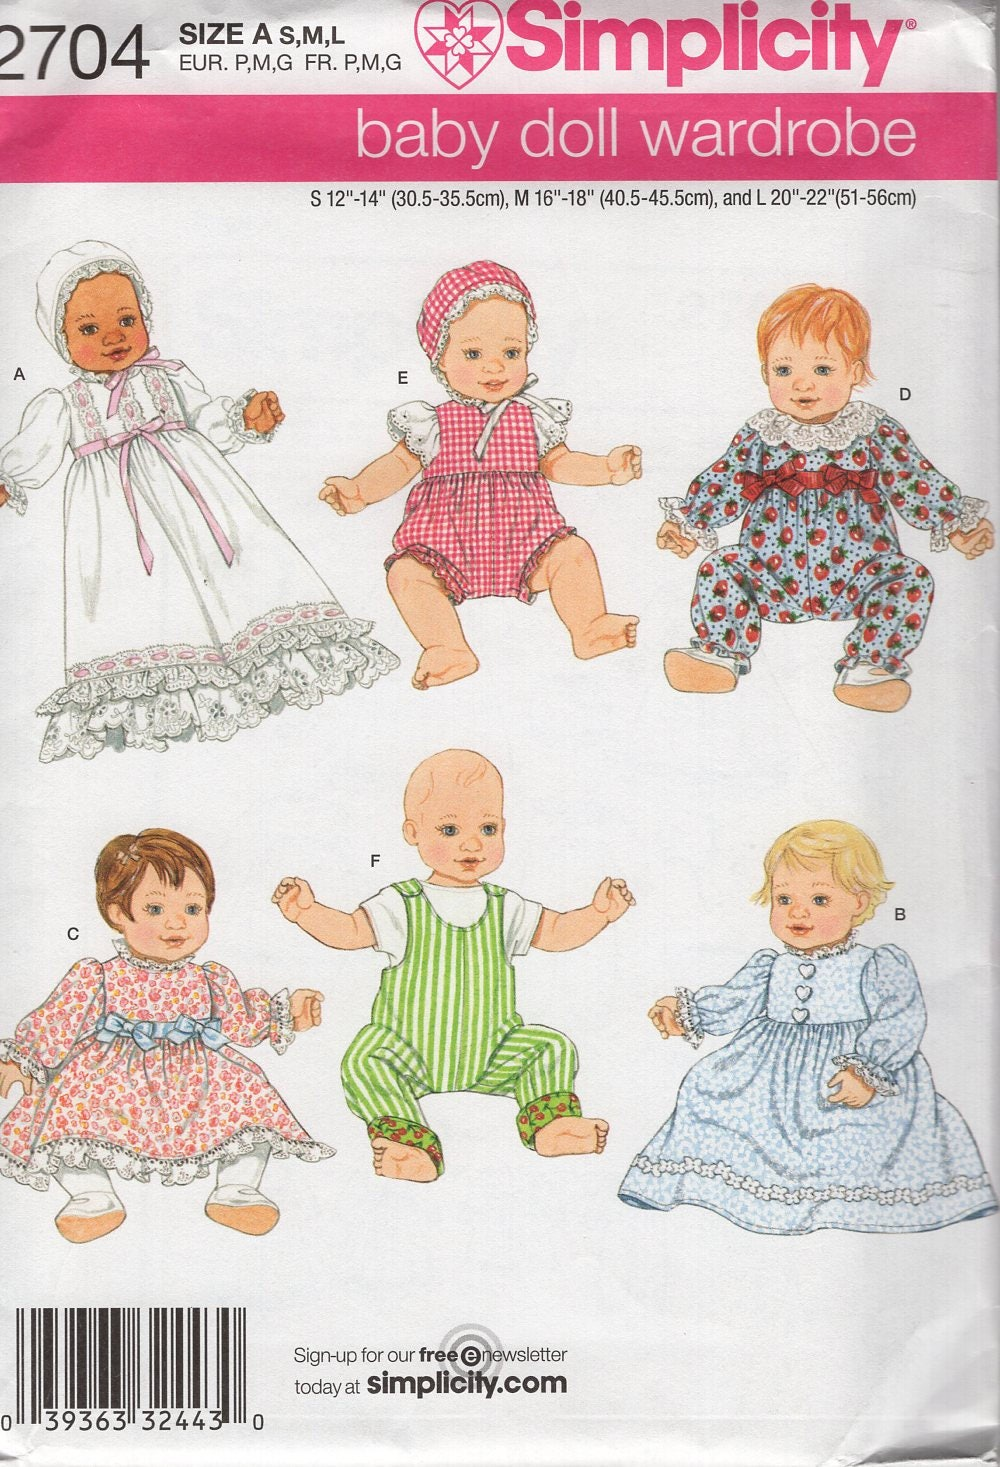 Simplicity 2704 Free Us Ship 50\'s Reproduction 12-22 Babydoll Doll ...